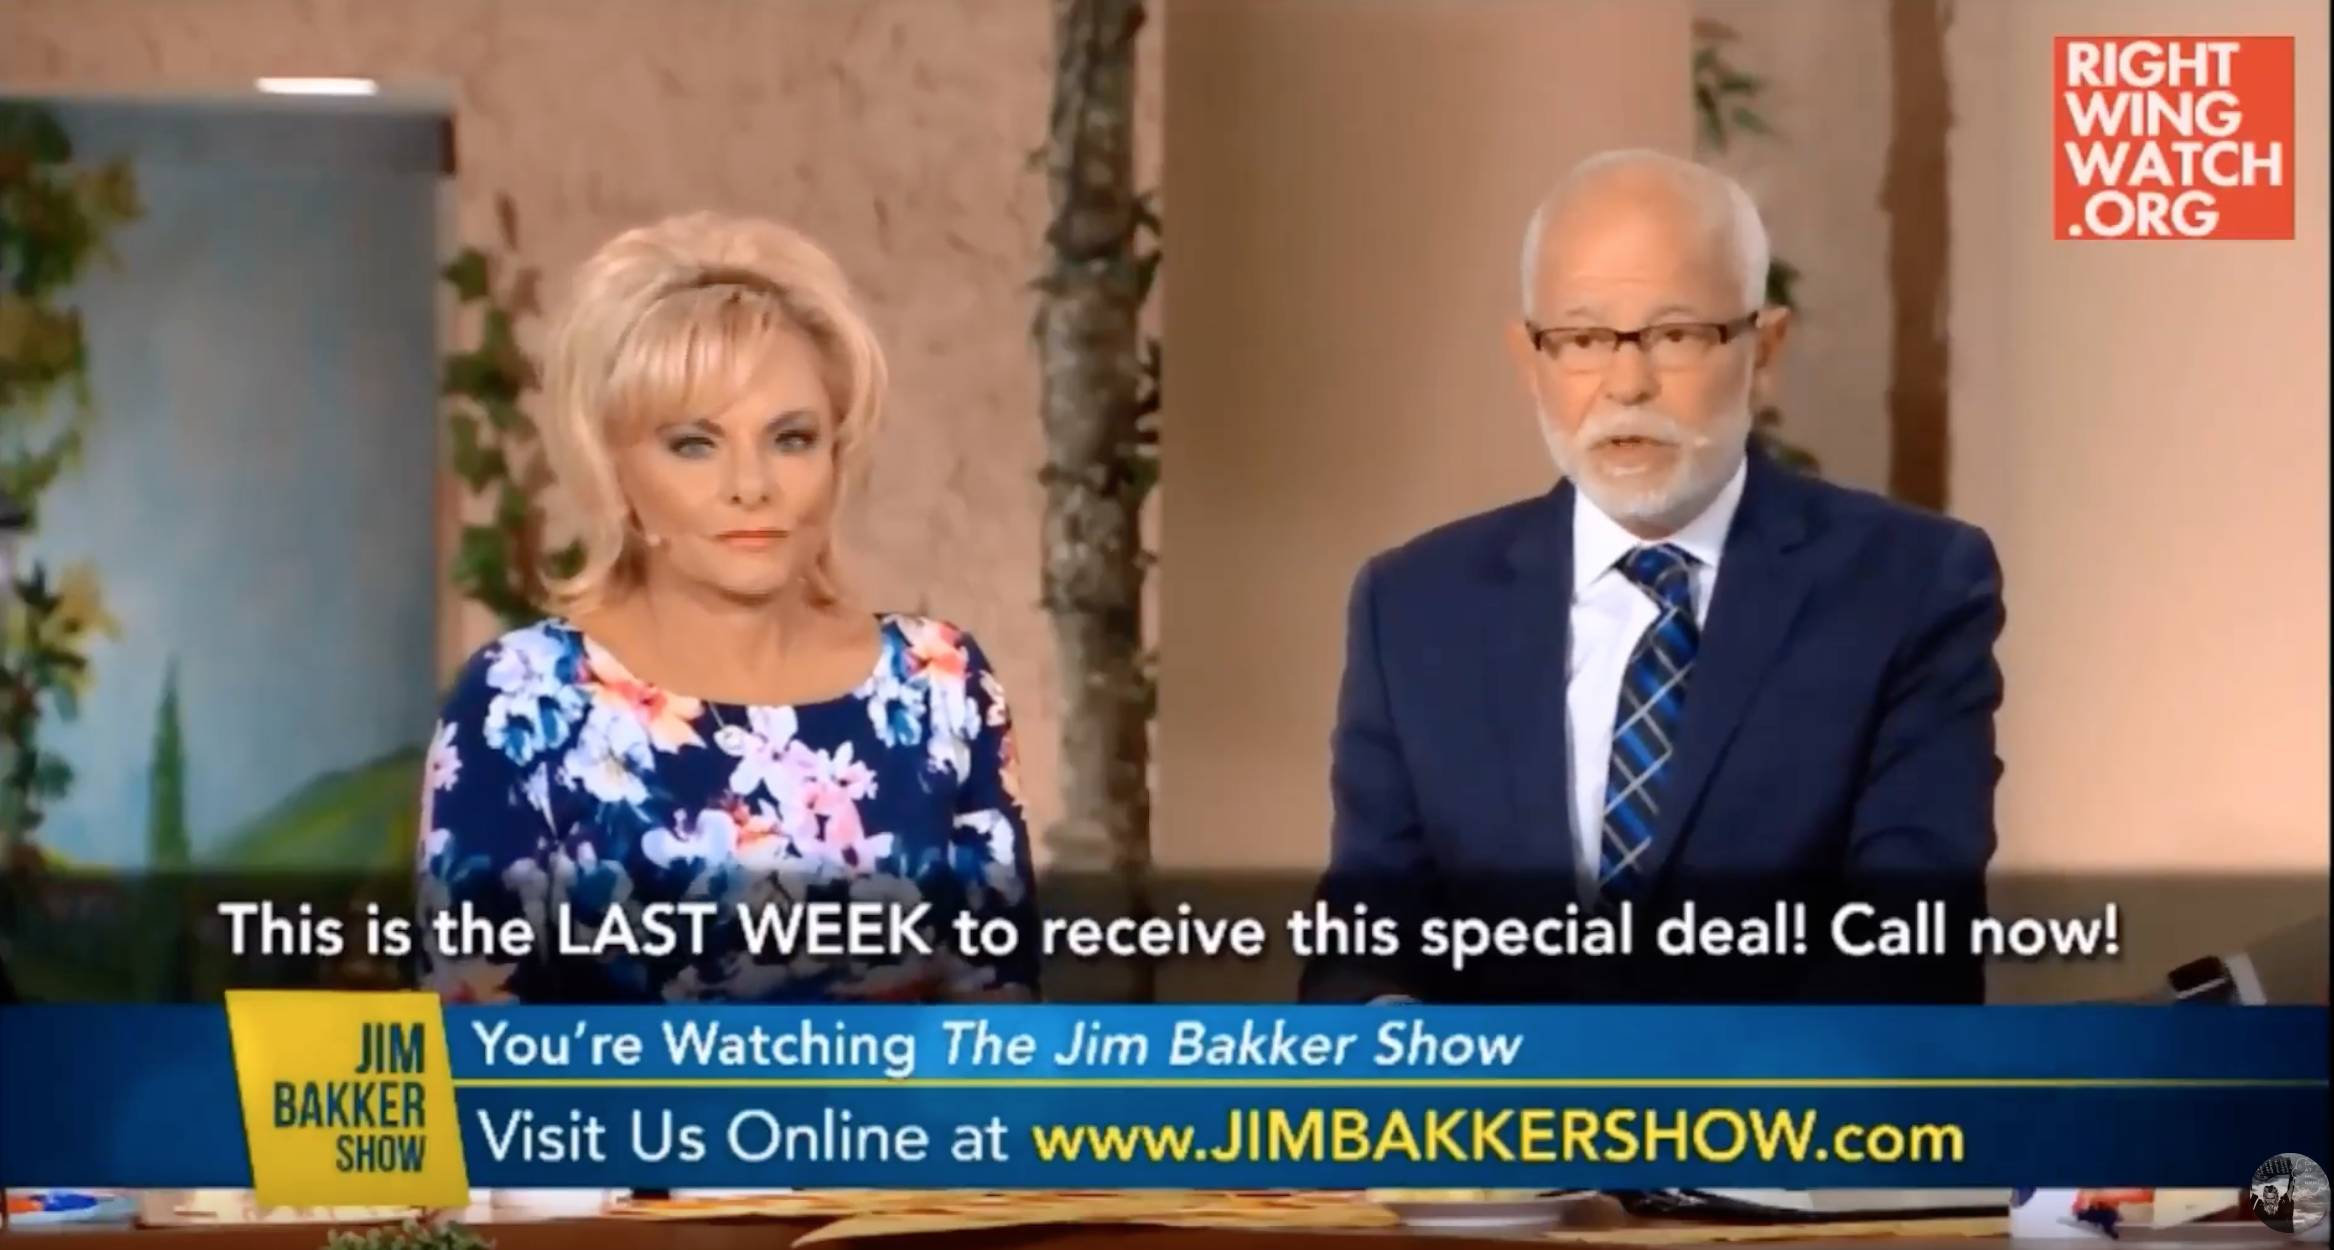 In 2017 Jim Bakker Predicted That Trump Impeachment Would Trigger Christian Civil War…… Will He Repent From His Prediction When It Fails?